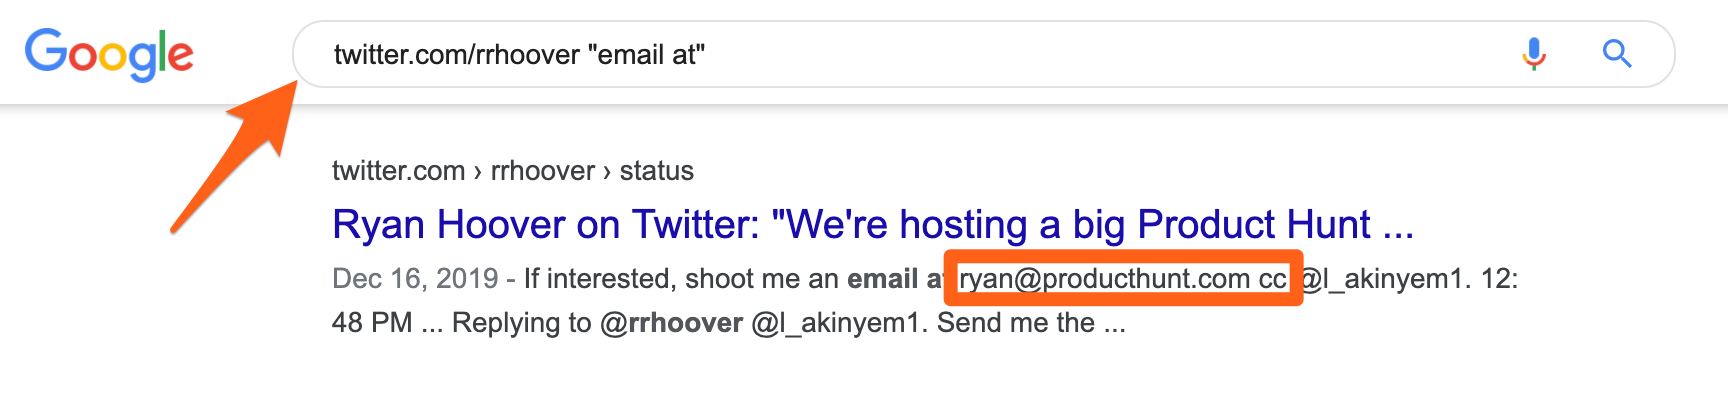 Find someone's email on Twitter using Google